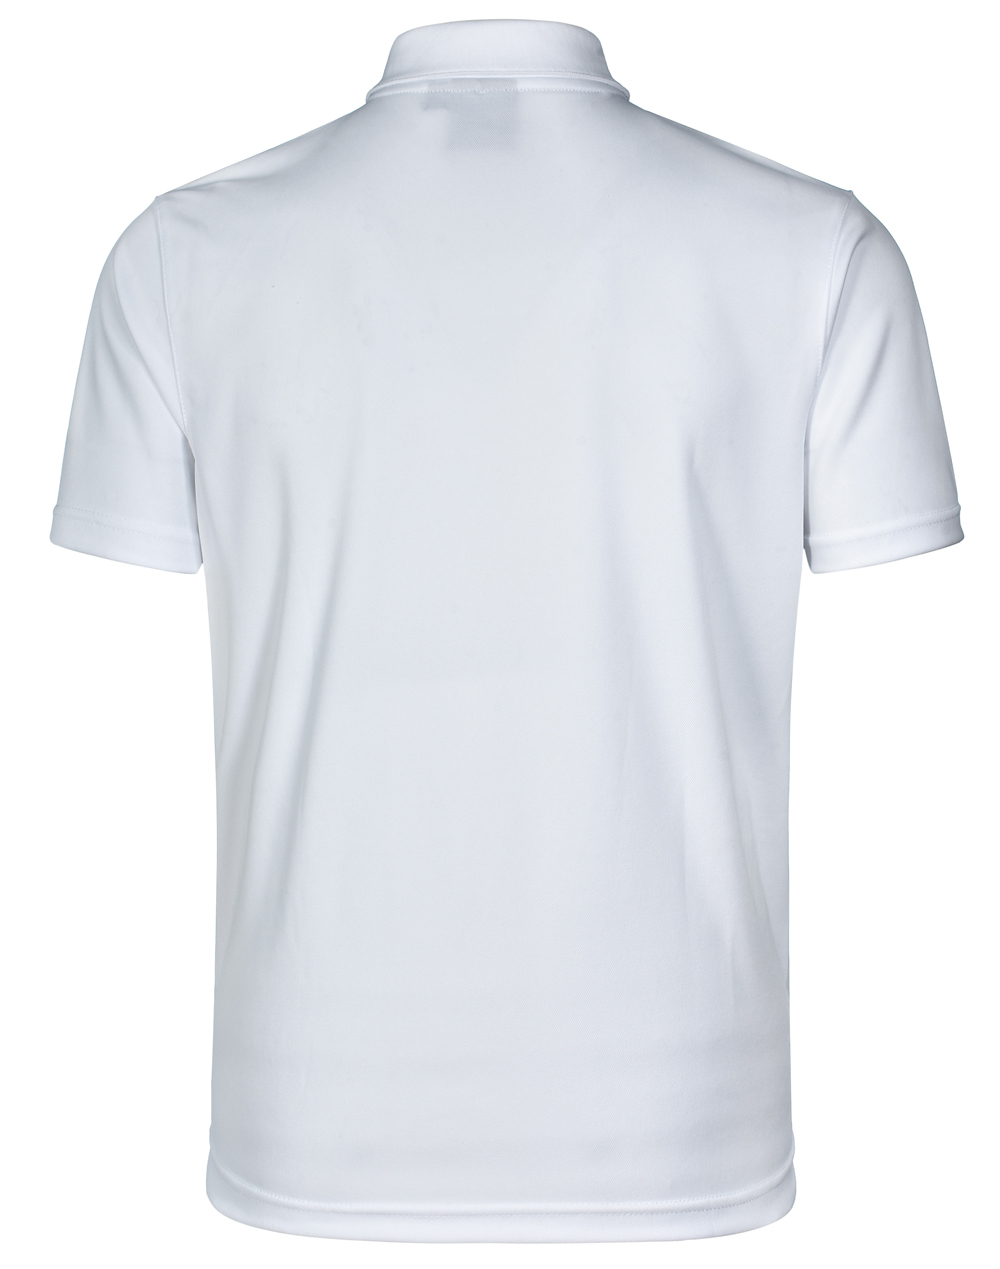 https://s3-ap-southeast-1.amazonaws.com/ws-imgs/POLOSHIRTS/PS83_WhiteAsh_Back.jpg